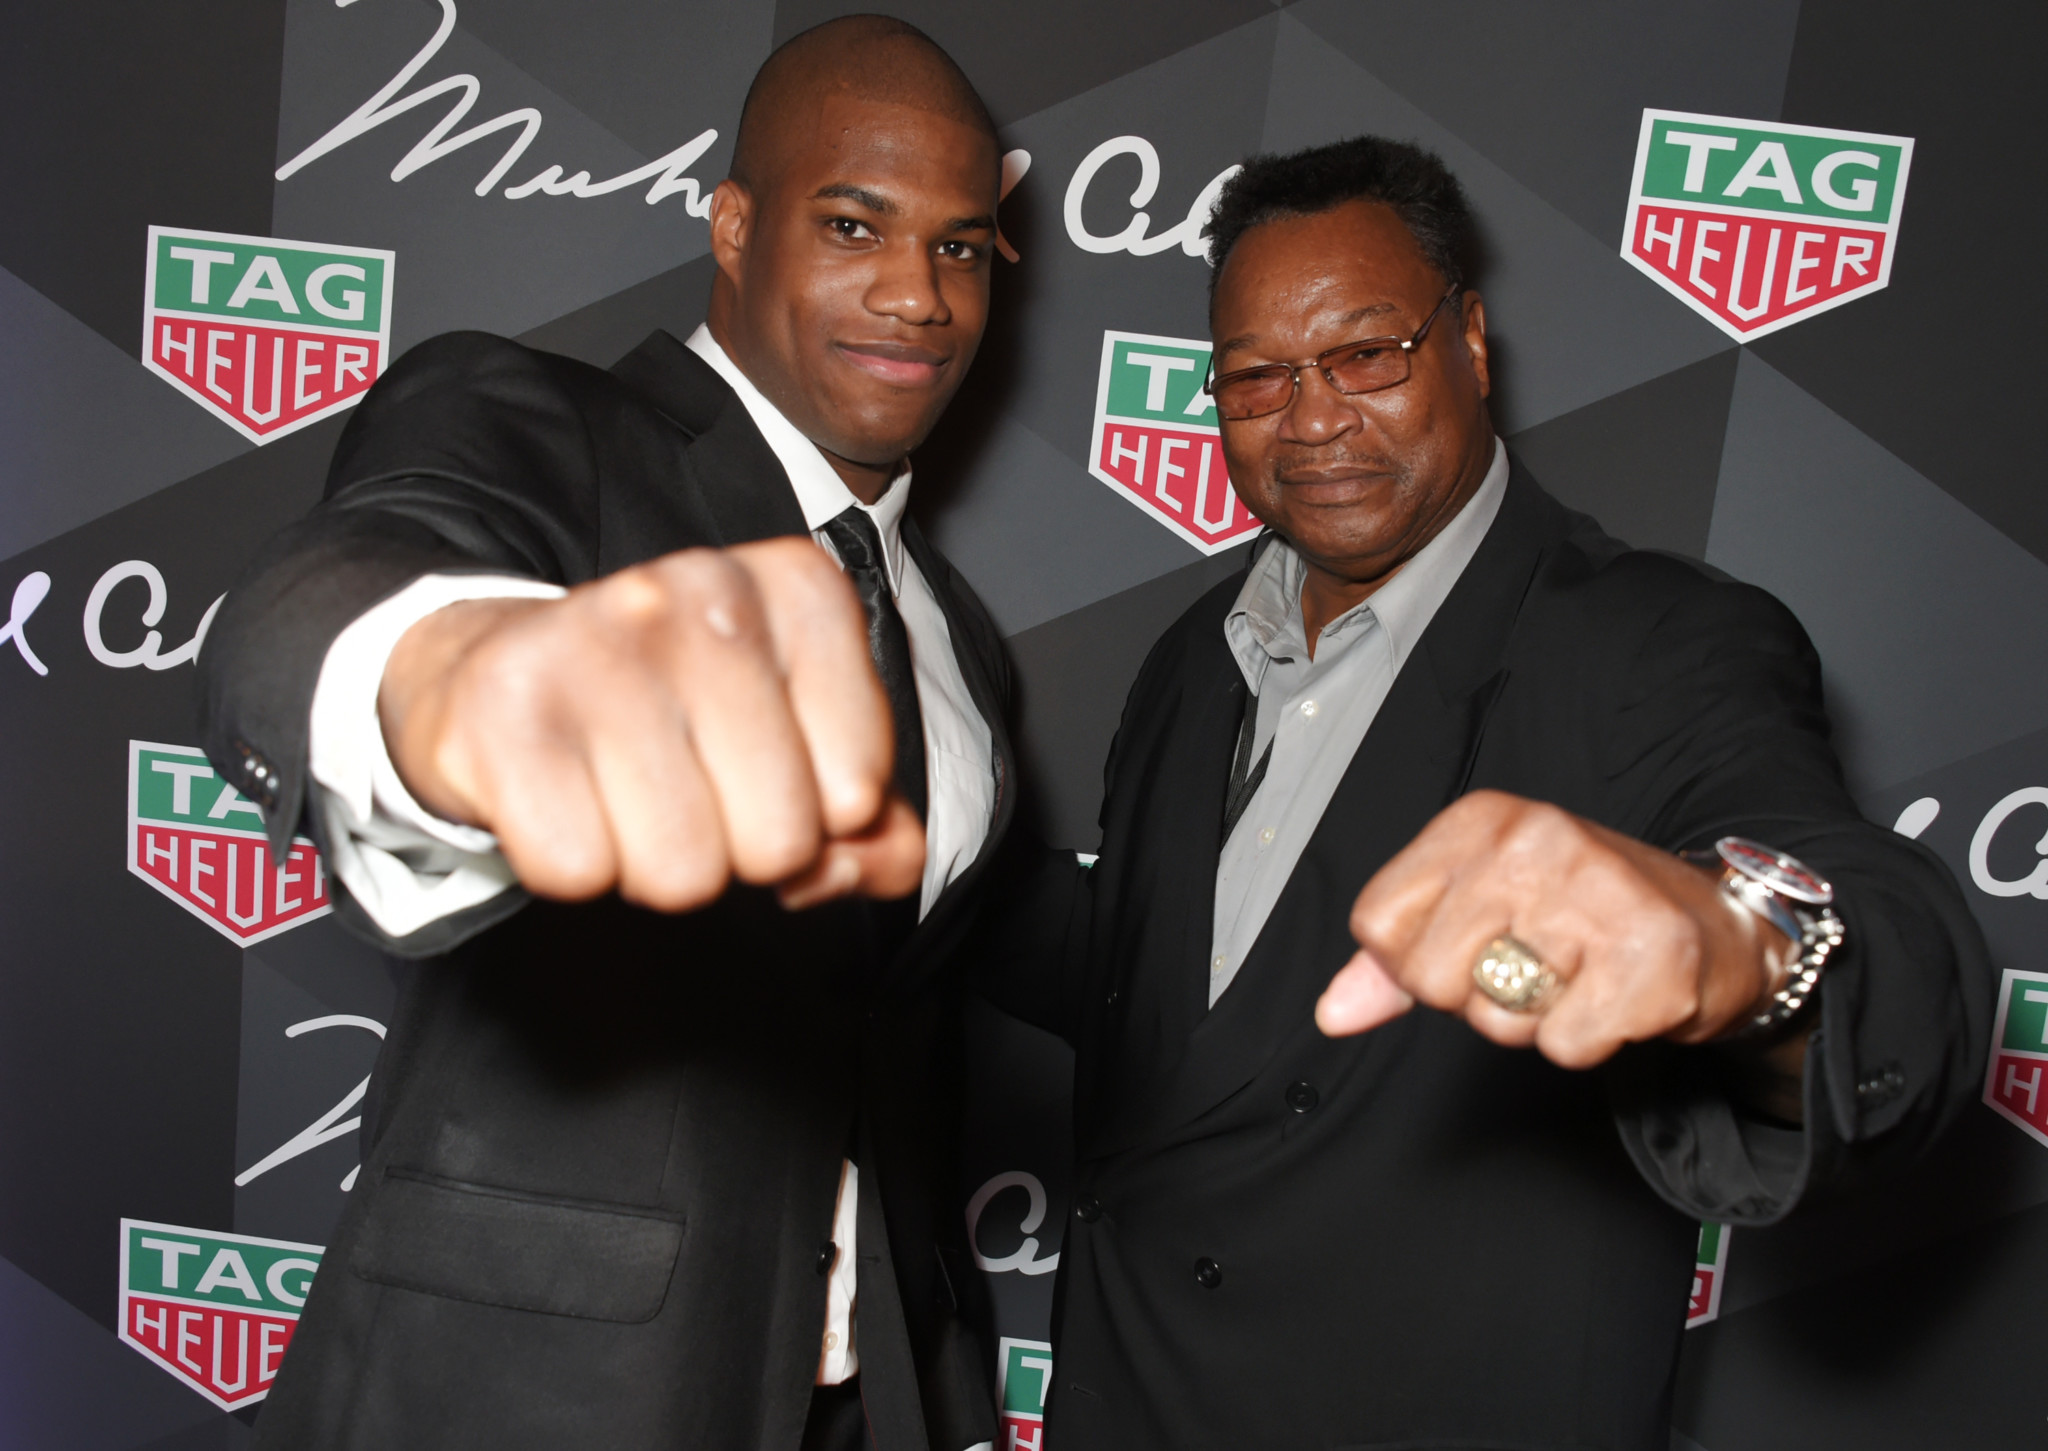 LONDON, ENGLAND - OCTOBER 10:  Daniel Dubois (L) and Larry Holmes attend the launch of the TAG Heuer Muhammad Ali Limited Edition Timepieces at BXR Gym on October 10, 2017 in London, England.  Pic Credit: Dave Benett